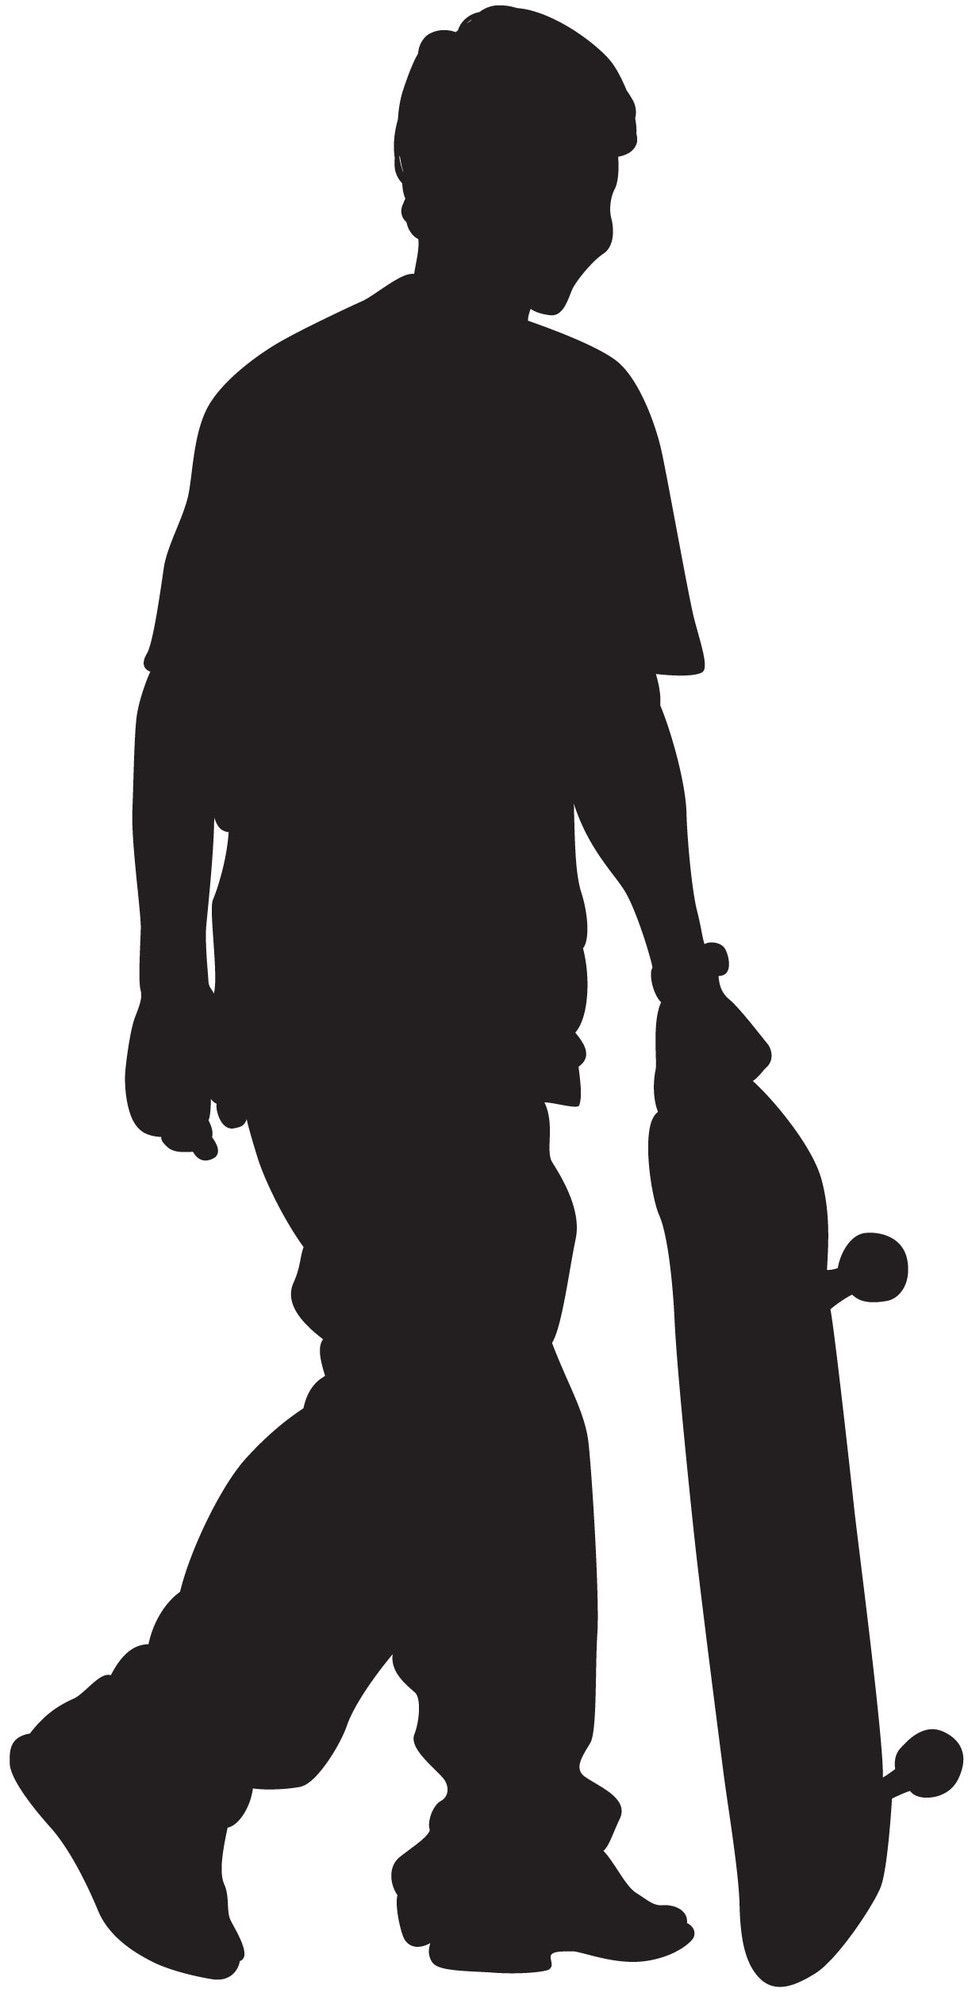 Vinyl 200 Cm Breed Skateboard Silhouette Xi Cutout Wall Decal Crafts Svg Files